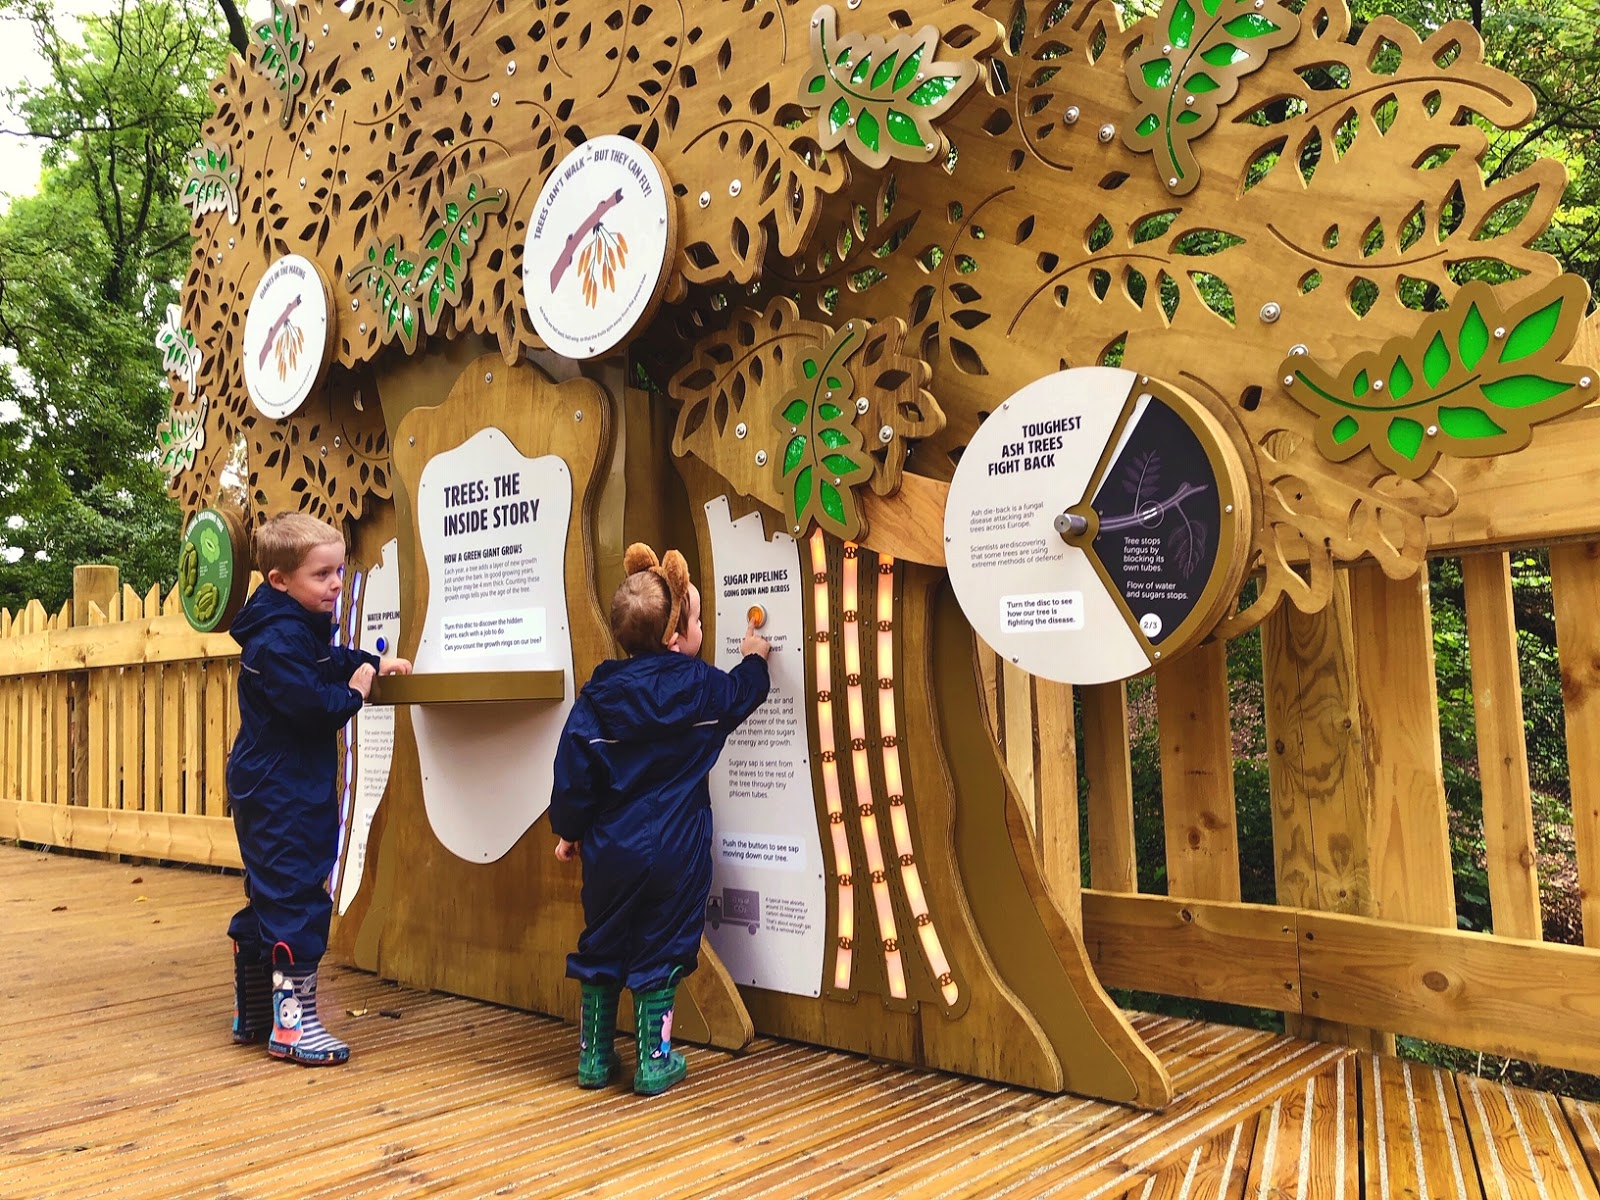 two boys in puddle suits and wellies playing with an interactive game at wild place project